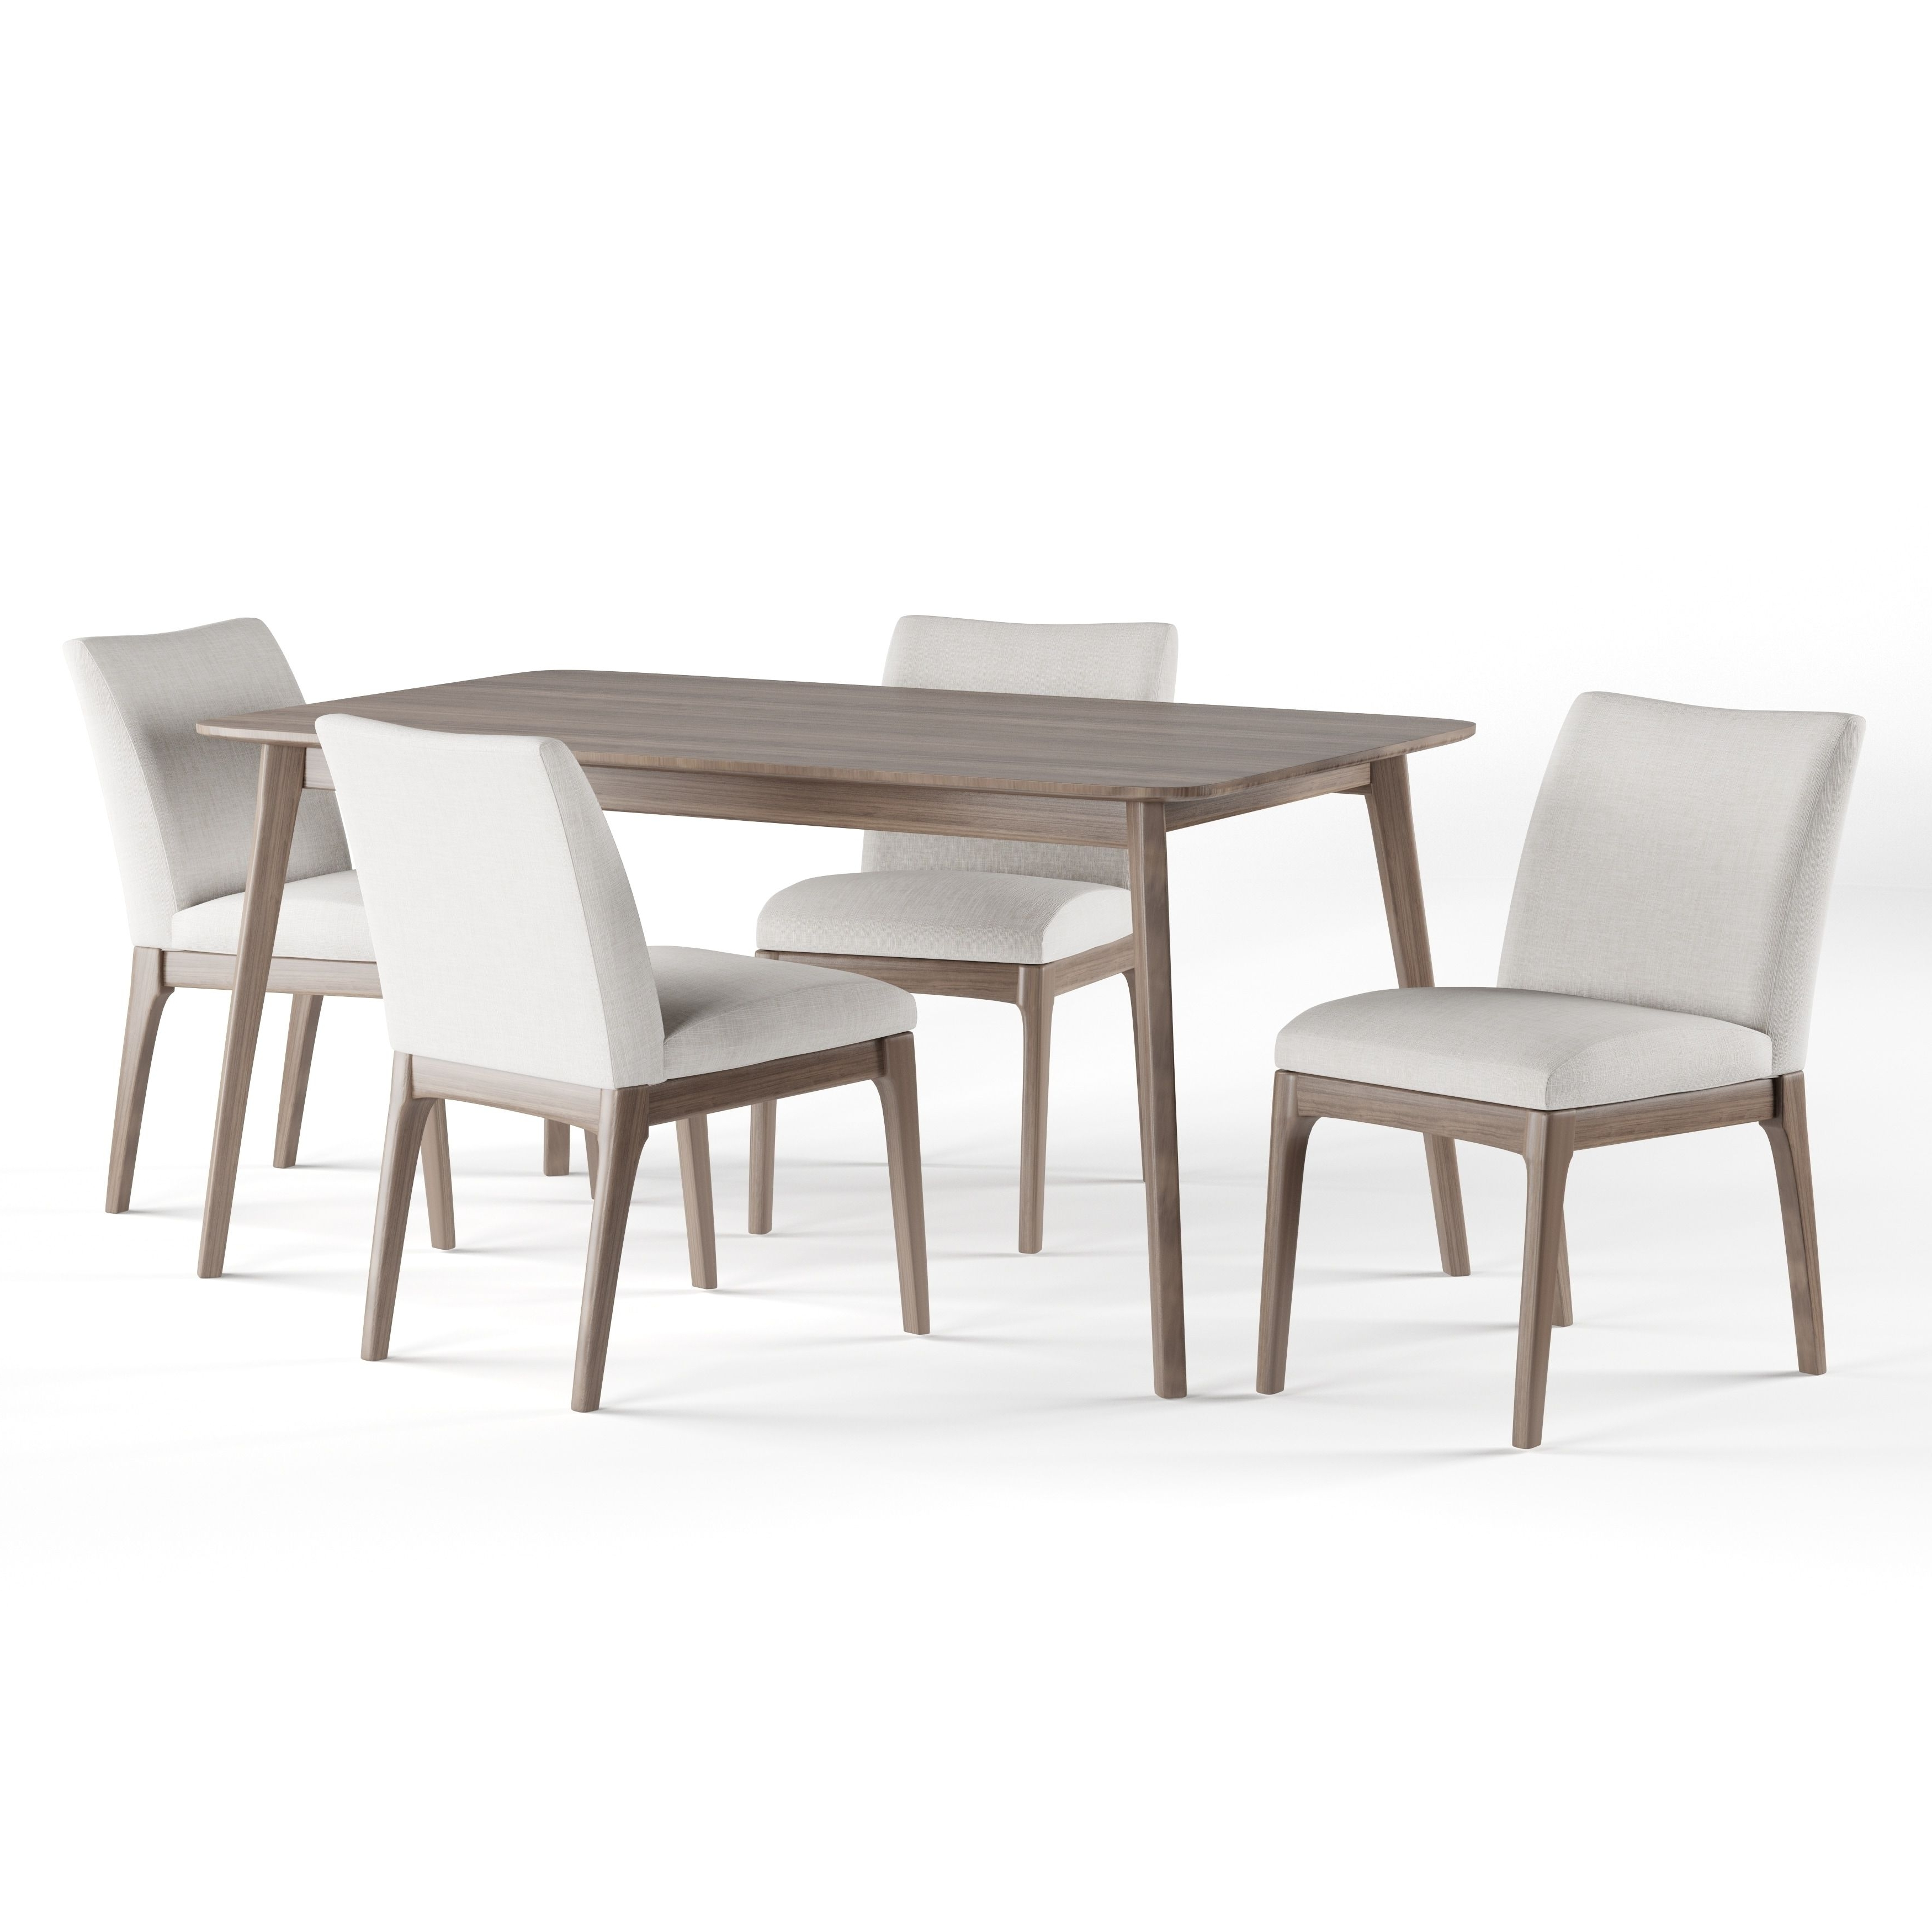 Toby 7 Piece Dining Setorren Ellis Reviews Intended For Fashionable Lassen 5 Piece Round Dining Sets (View 20 of 25)